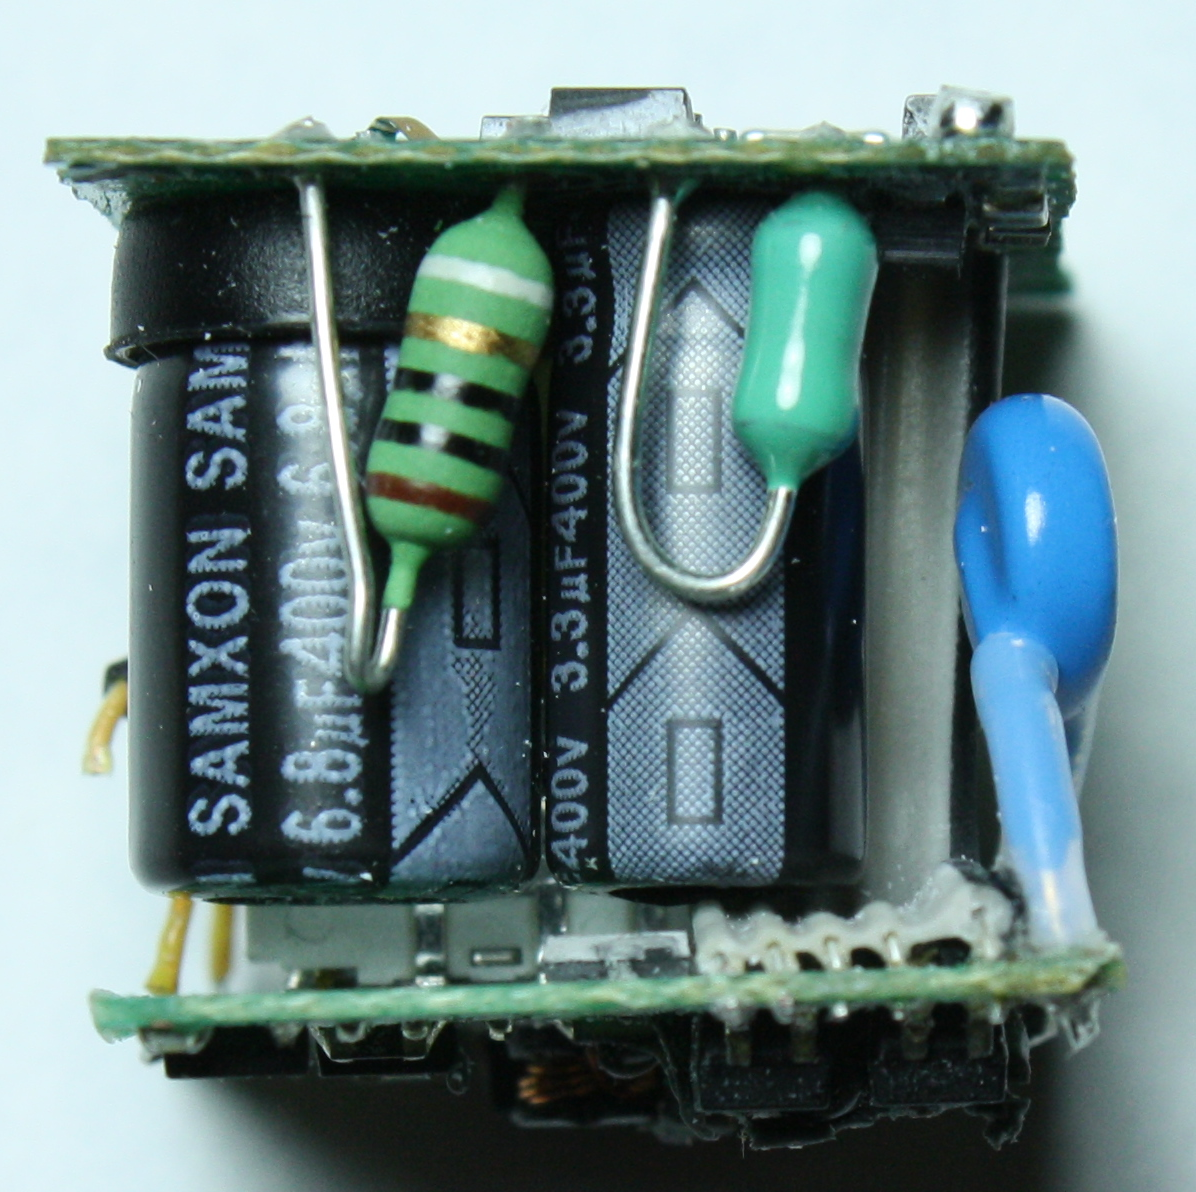 Apple Iphone Charger Teardown Quality In A Tiny Expensive Package Transistors Dc Voltage Grounded With Ac Input Electrical Showing The Fusible Resistor Striped Inductor Green